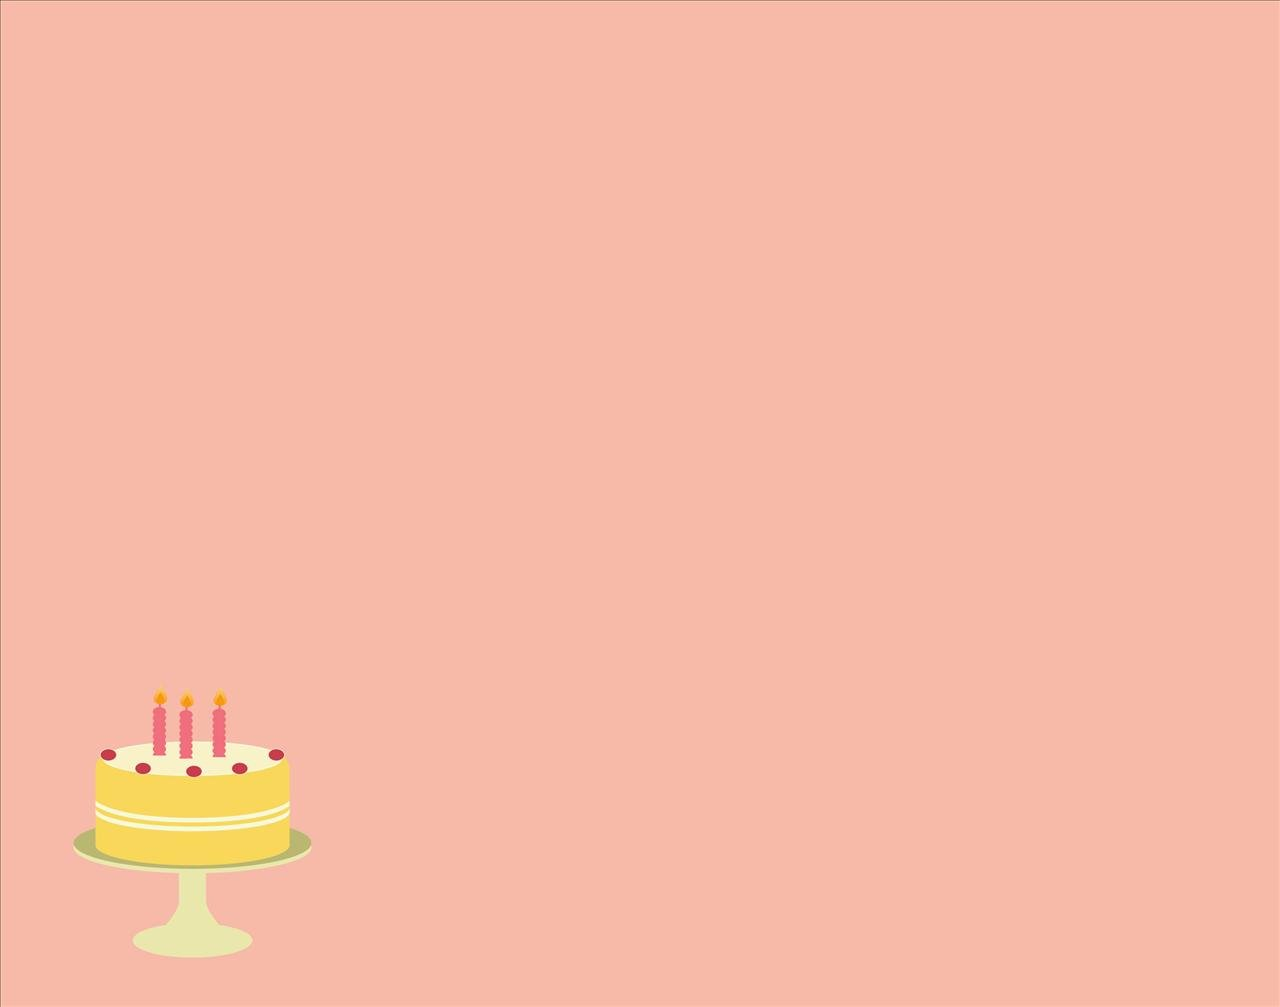 three candles birthday party celebration backgrounds wallpapersjpg 1280x1007